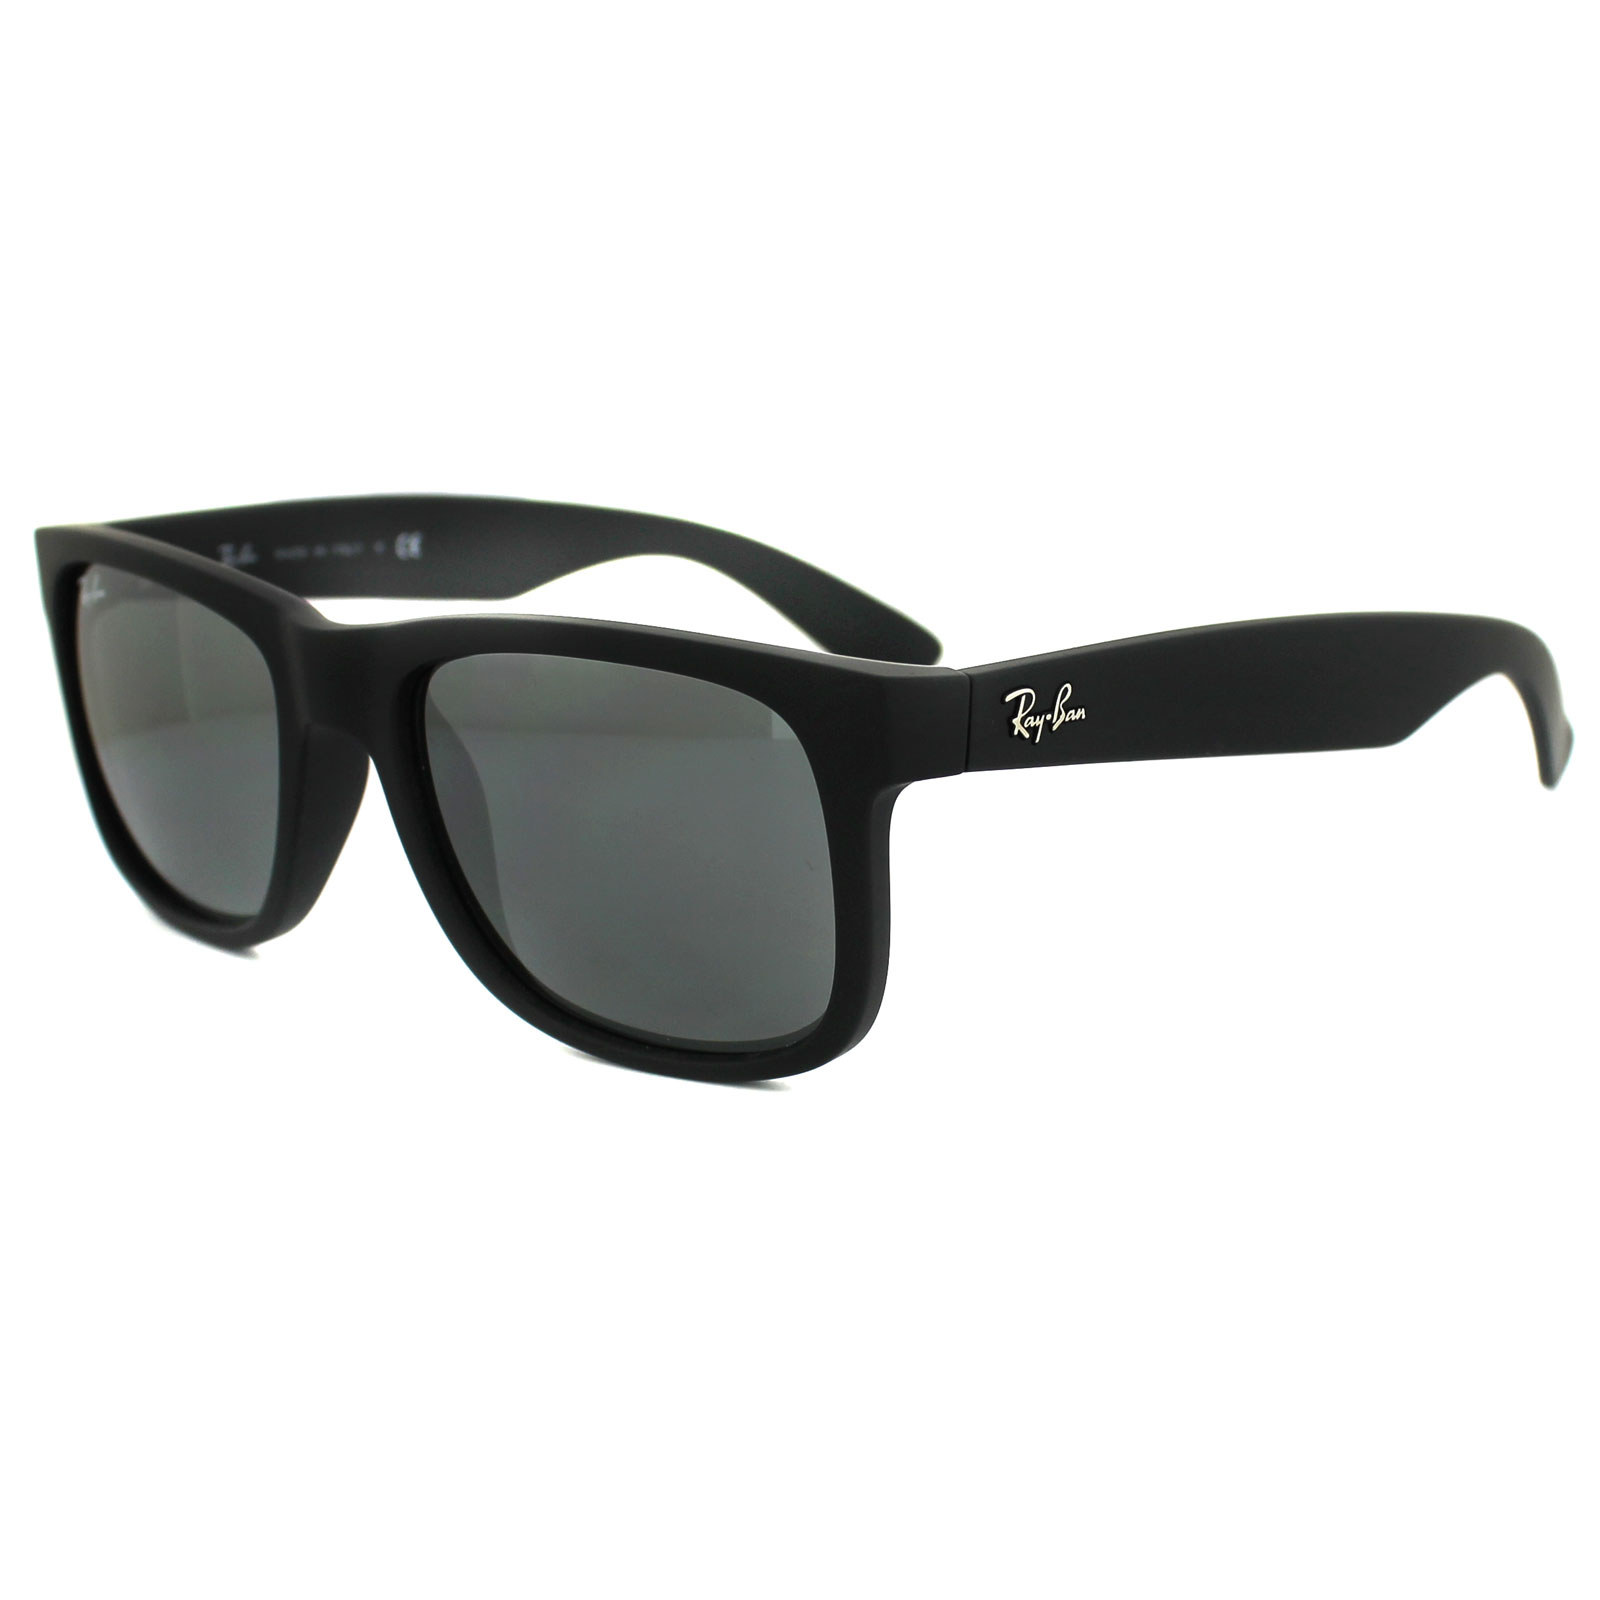 Sentinel Ray-Ban Sunglasses Justin 4165 622 6G Rubber Black Grey Mirror  Small 51mm 7be9ab6e04